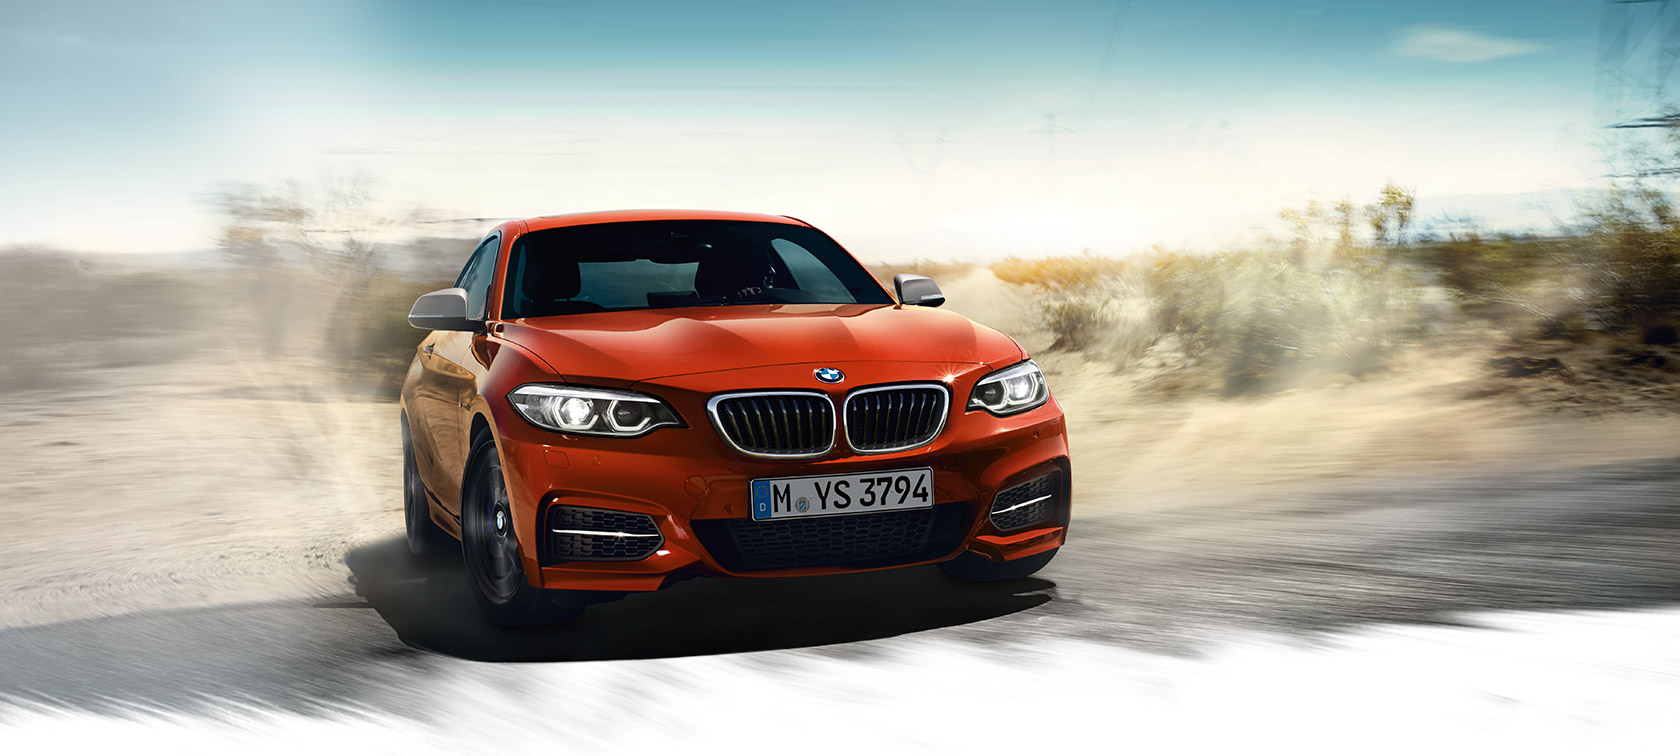 BMW 2-Series Coupe orange: plains drifting